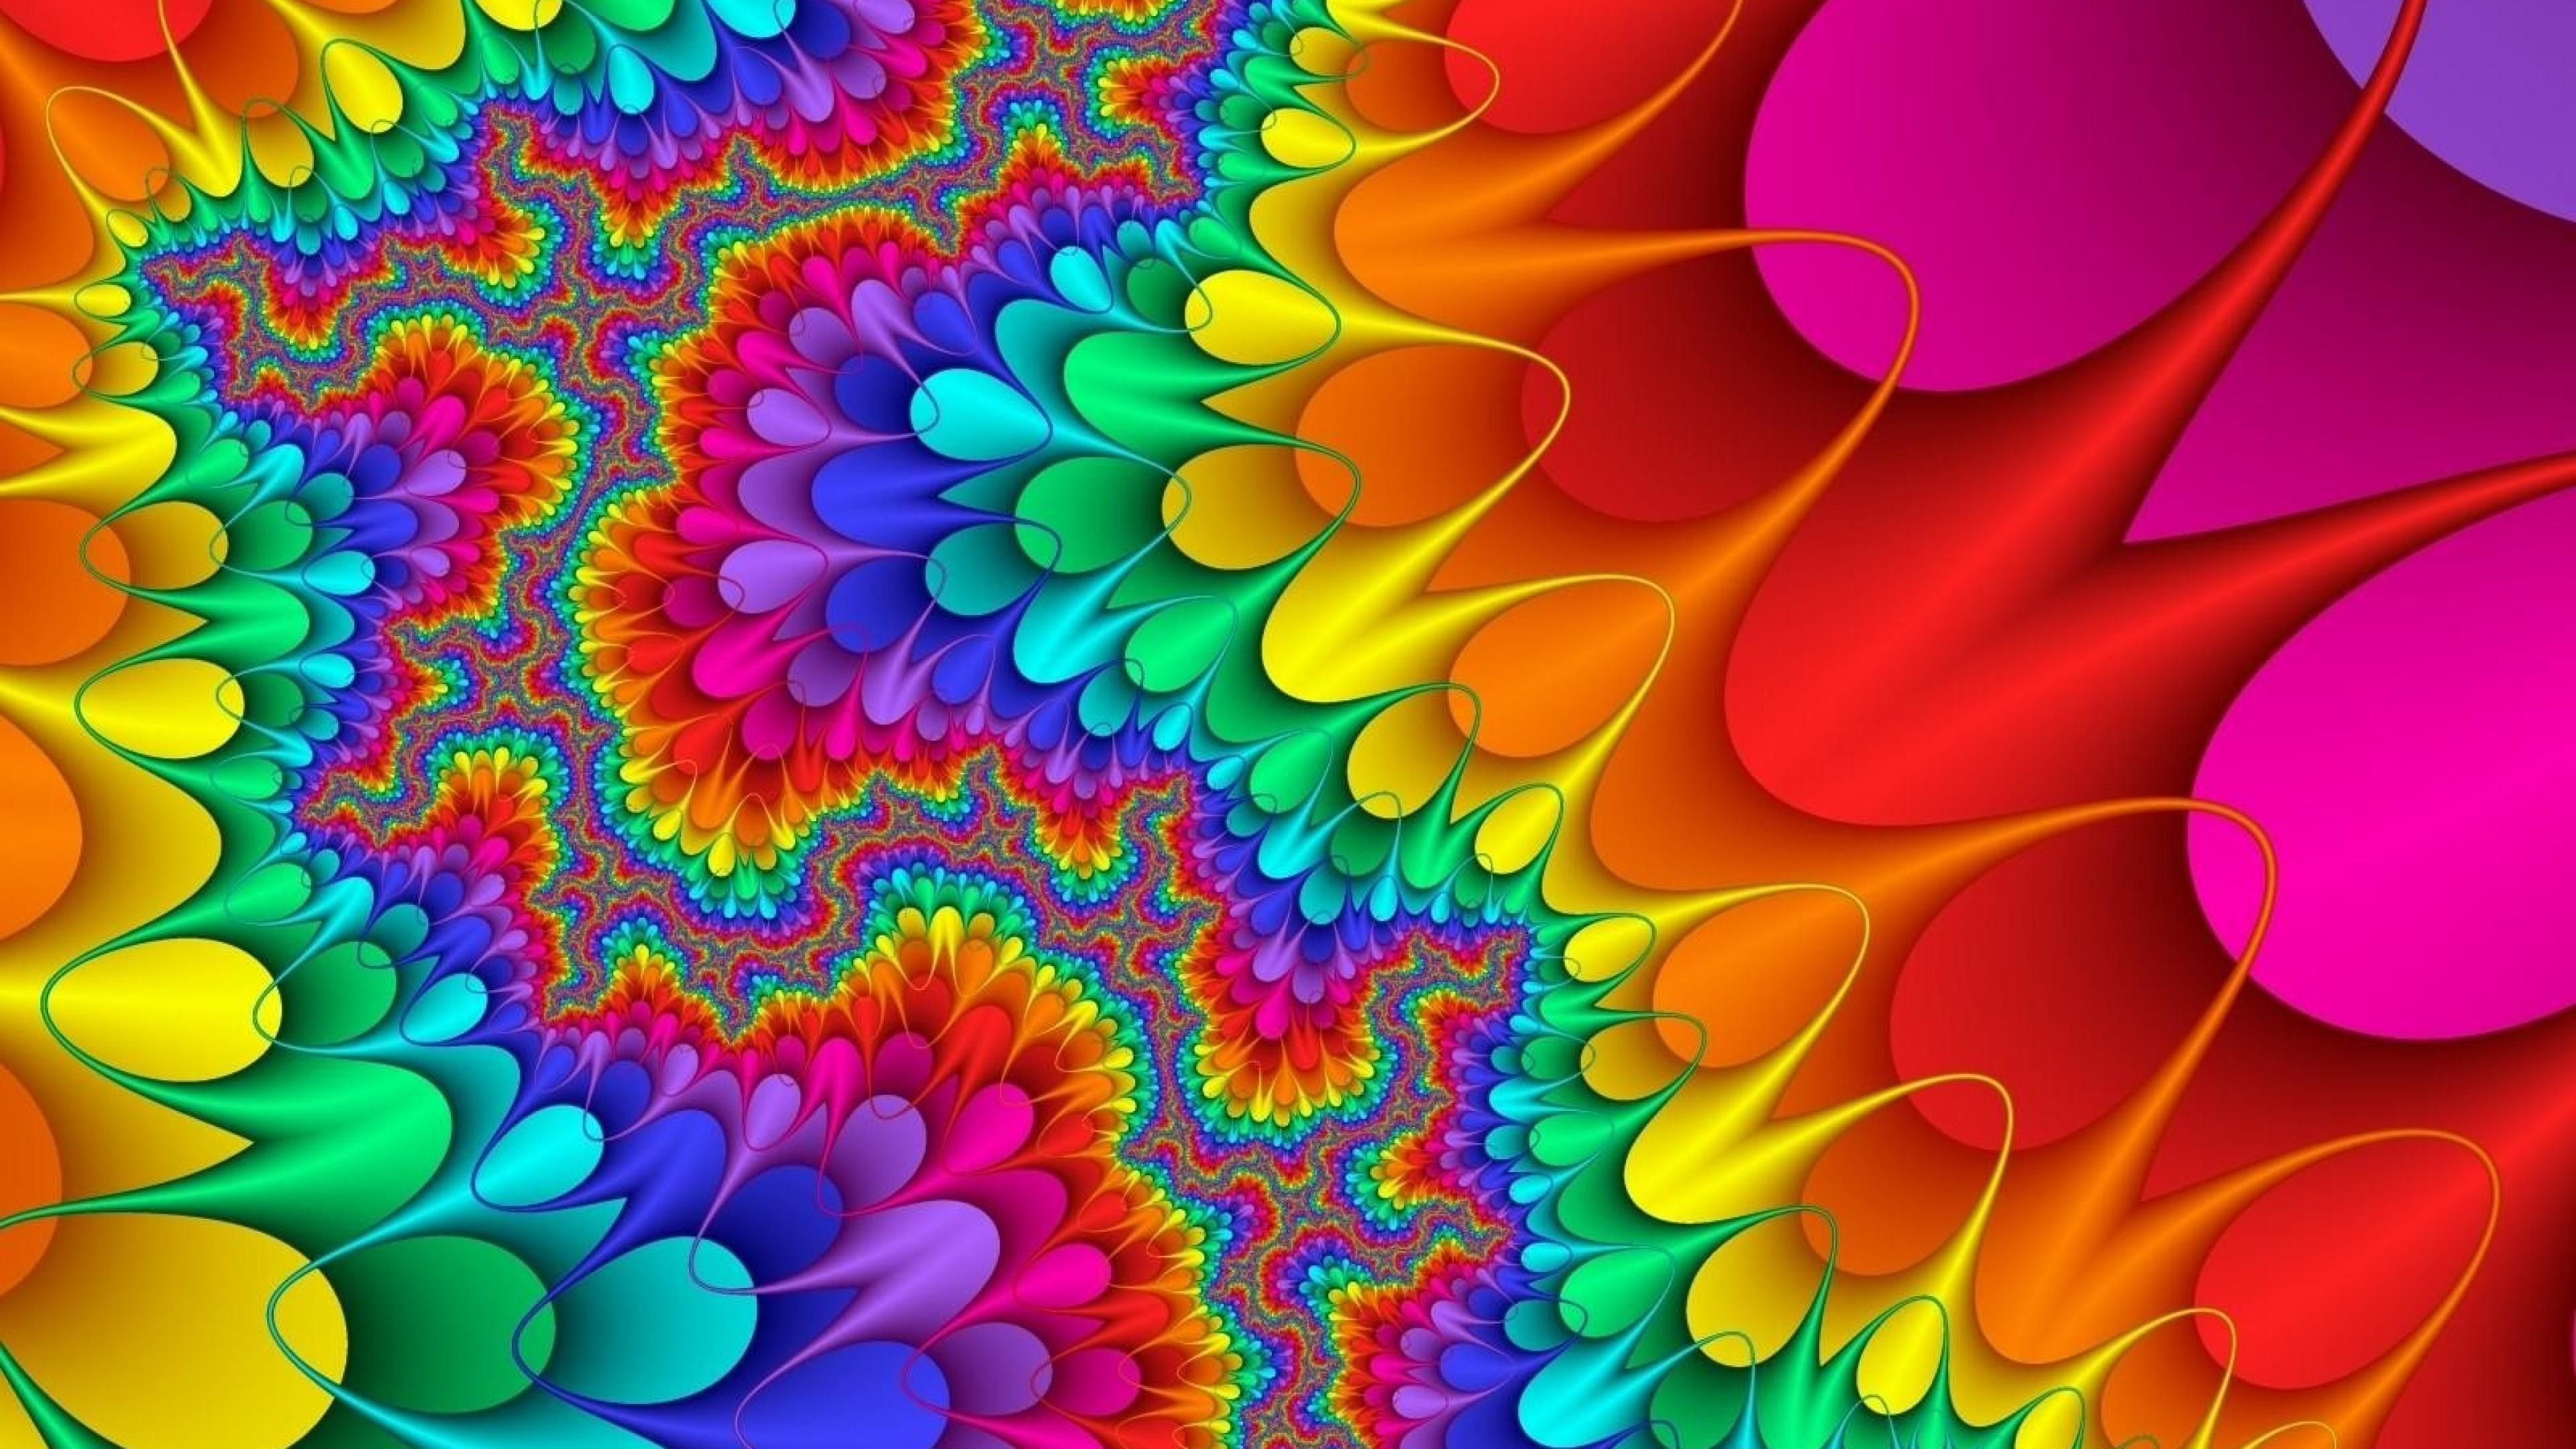 3840x2160 Wallpaper Wiki Abstract Colorful Widescreen 4k